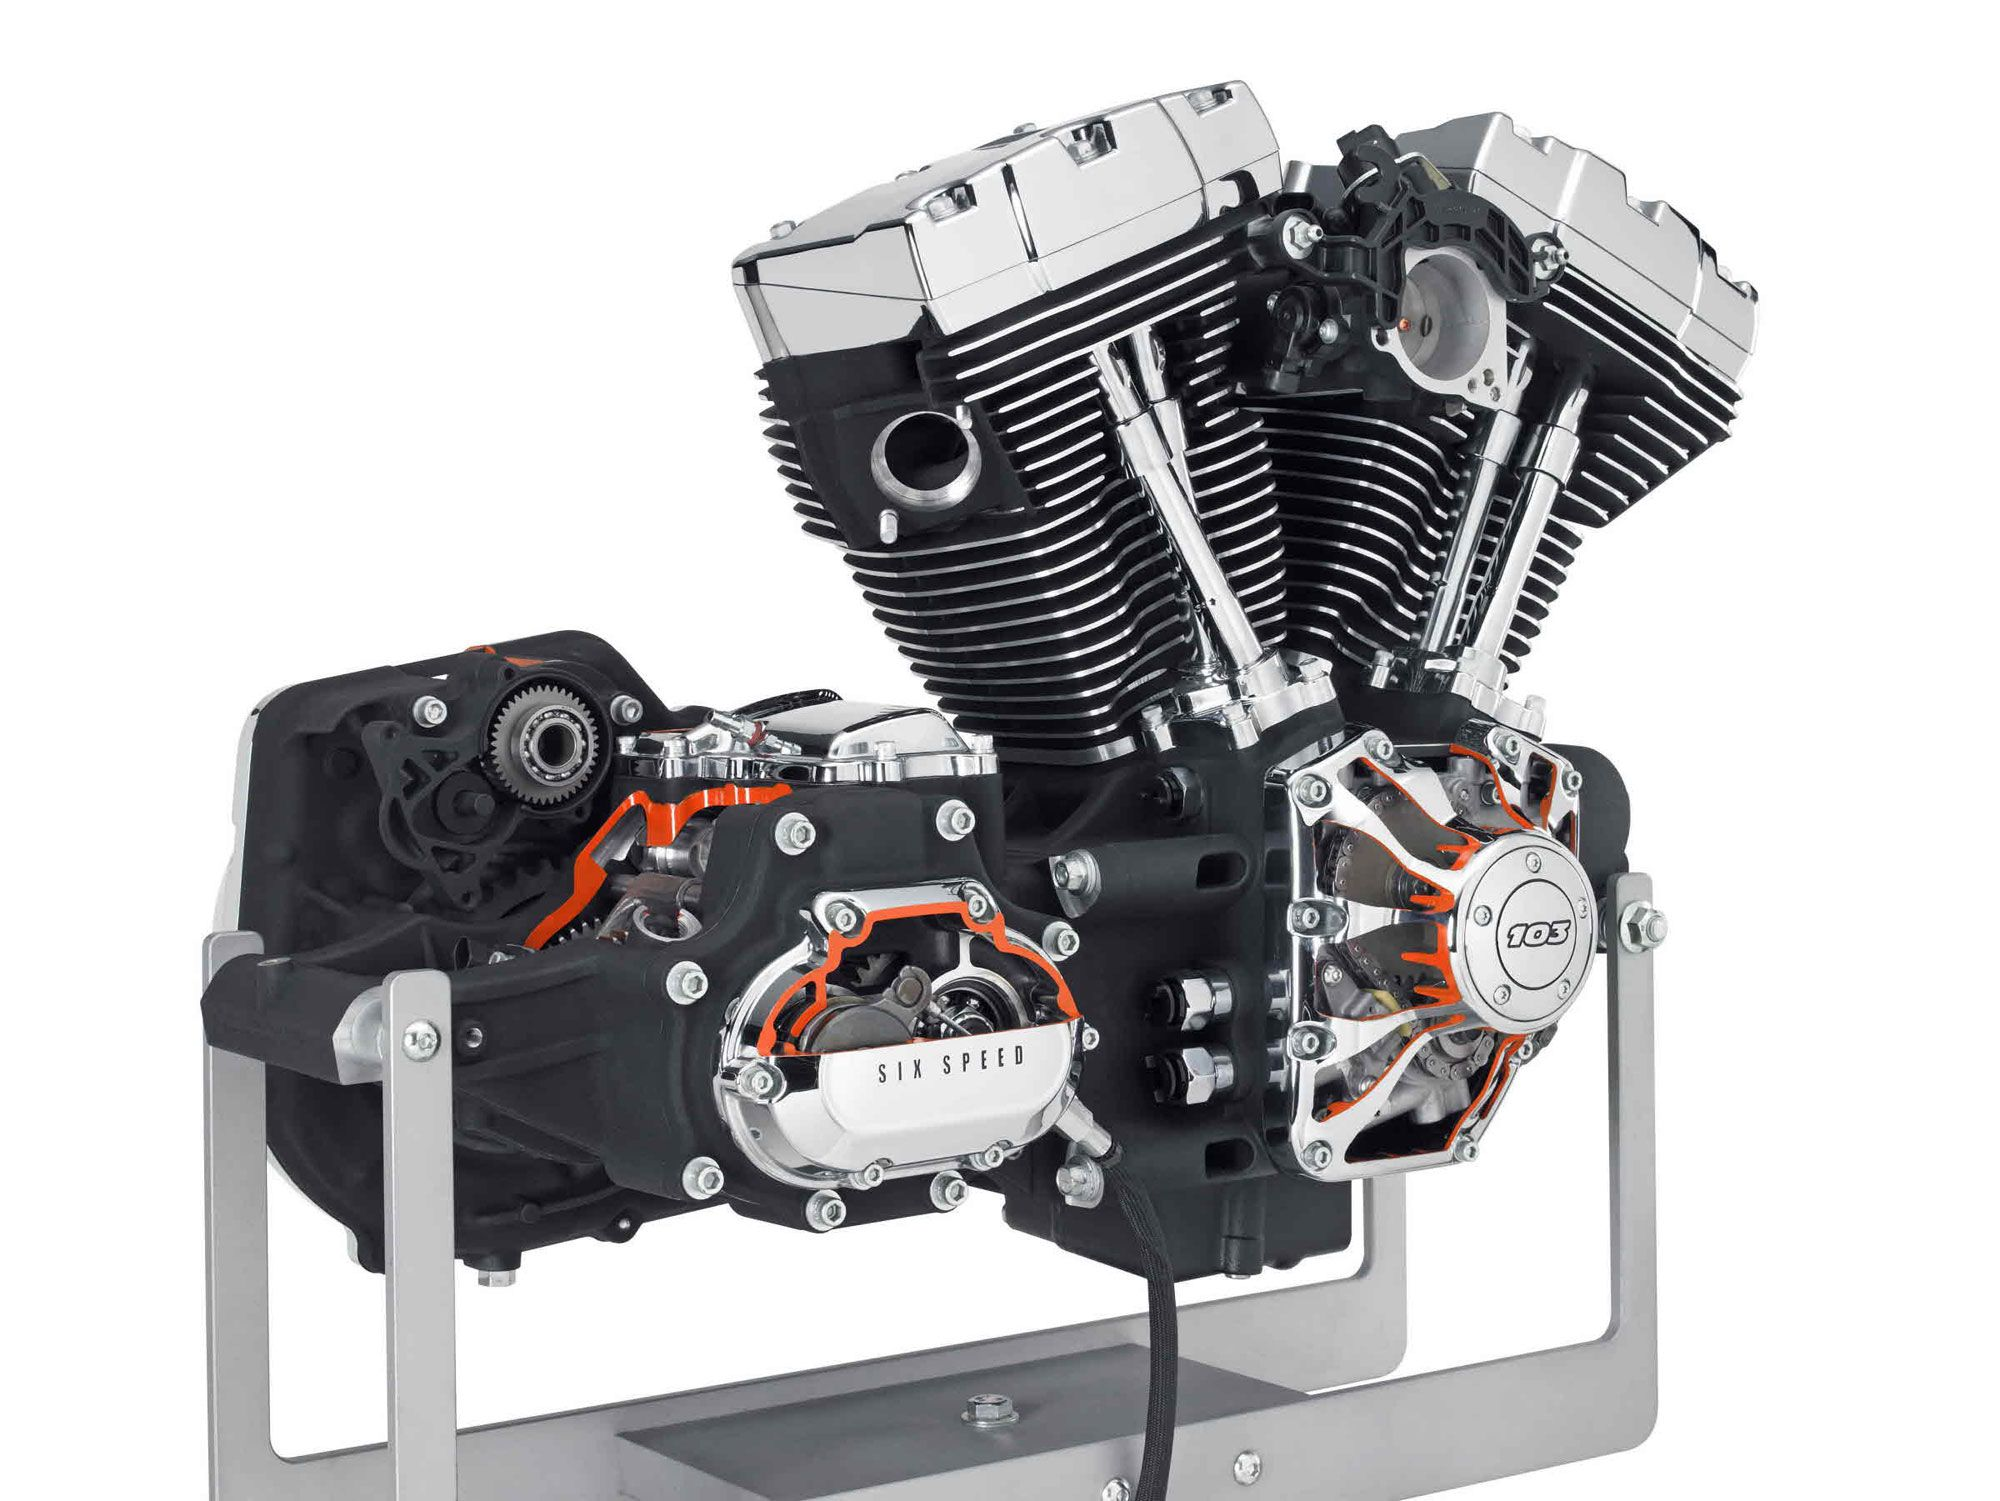 3cfbe8a3d0e5eae2be7d43af4395980c model kit harley davidson engine google search engines harley davidson motorcycle diagrams at reclaimingppi.co